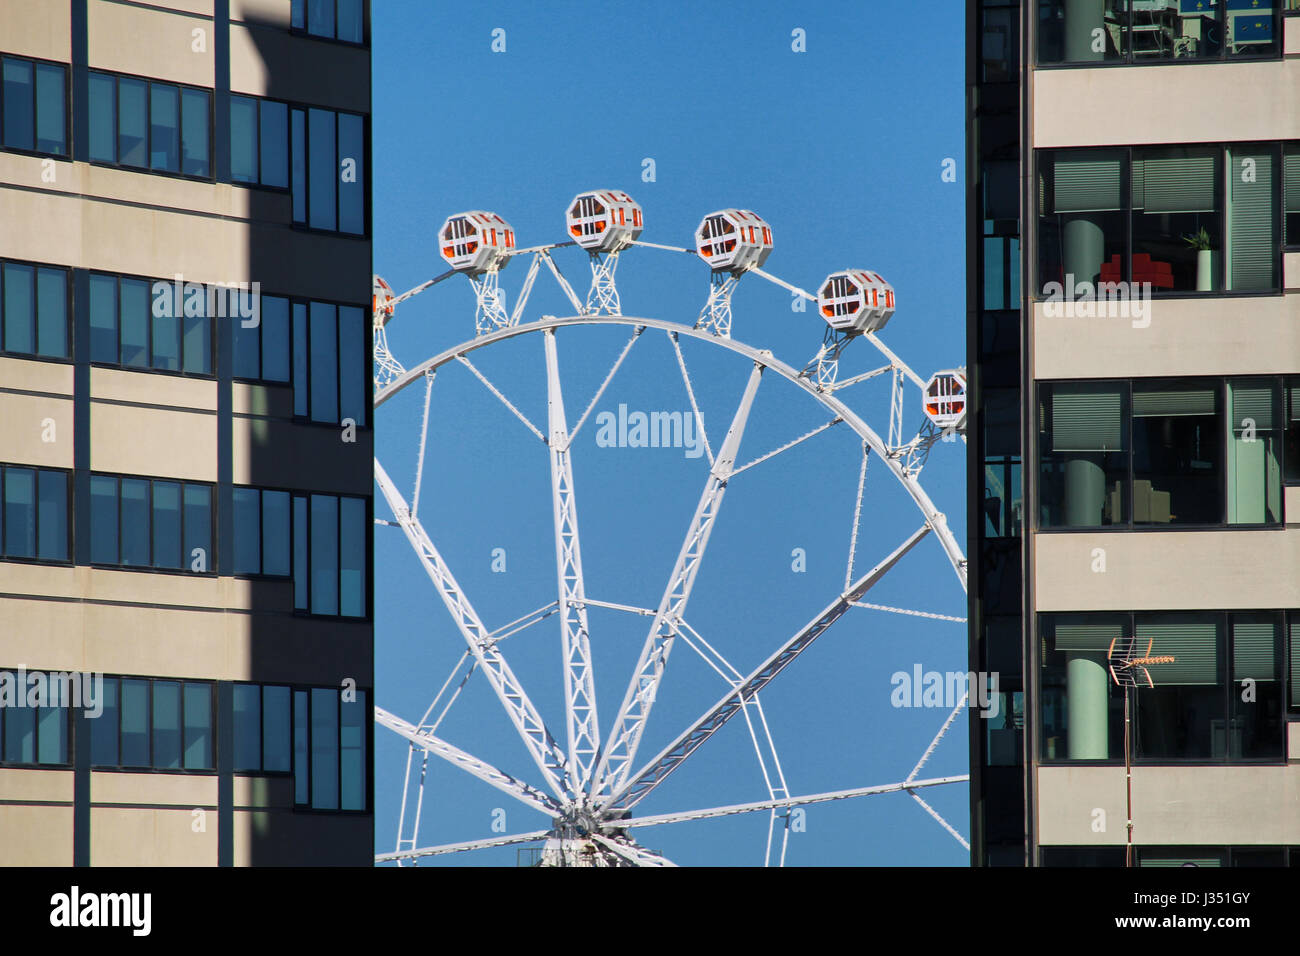 BARCELONA/SPAIN - 1 MAY 2017: Carousel between two skyscrapers at Barcelona's Feria de Abril near Forum - Stock Image